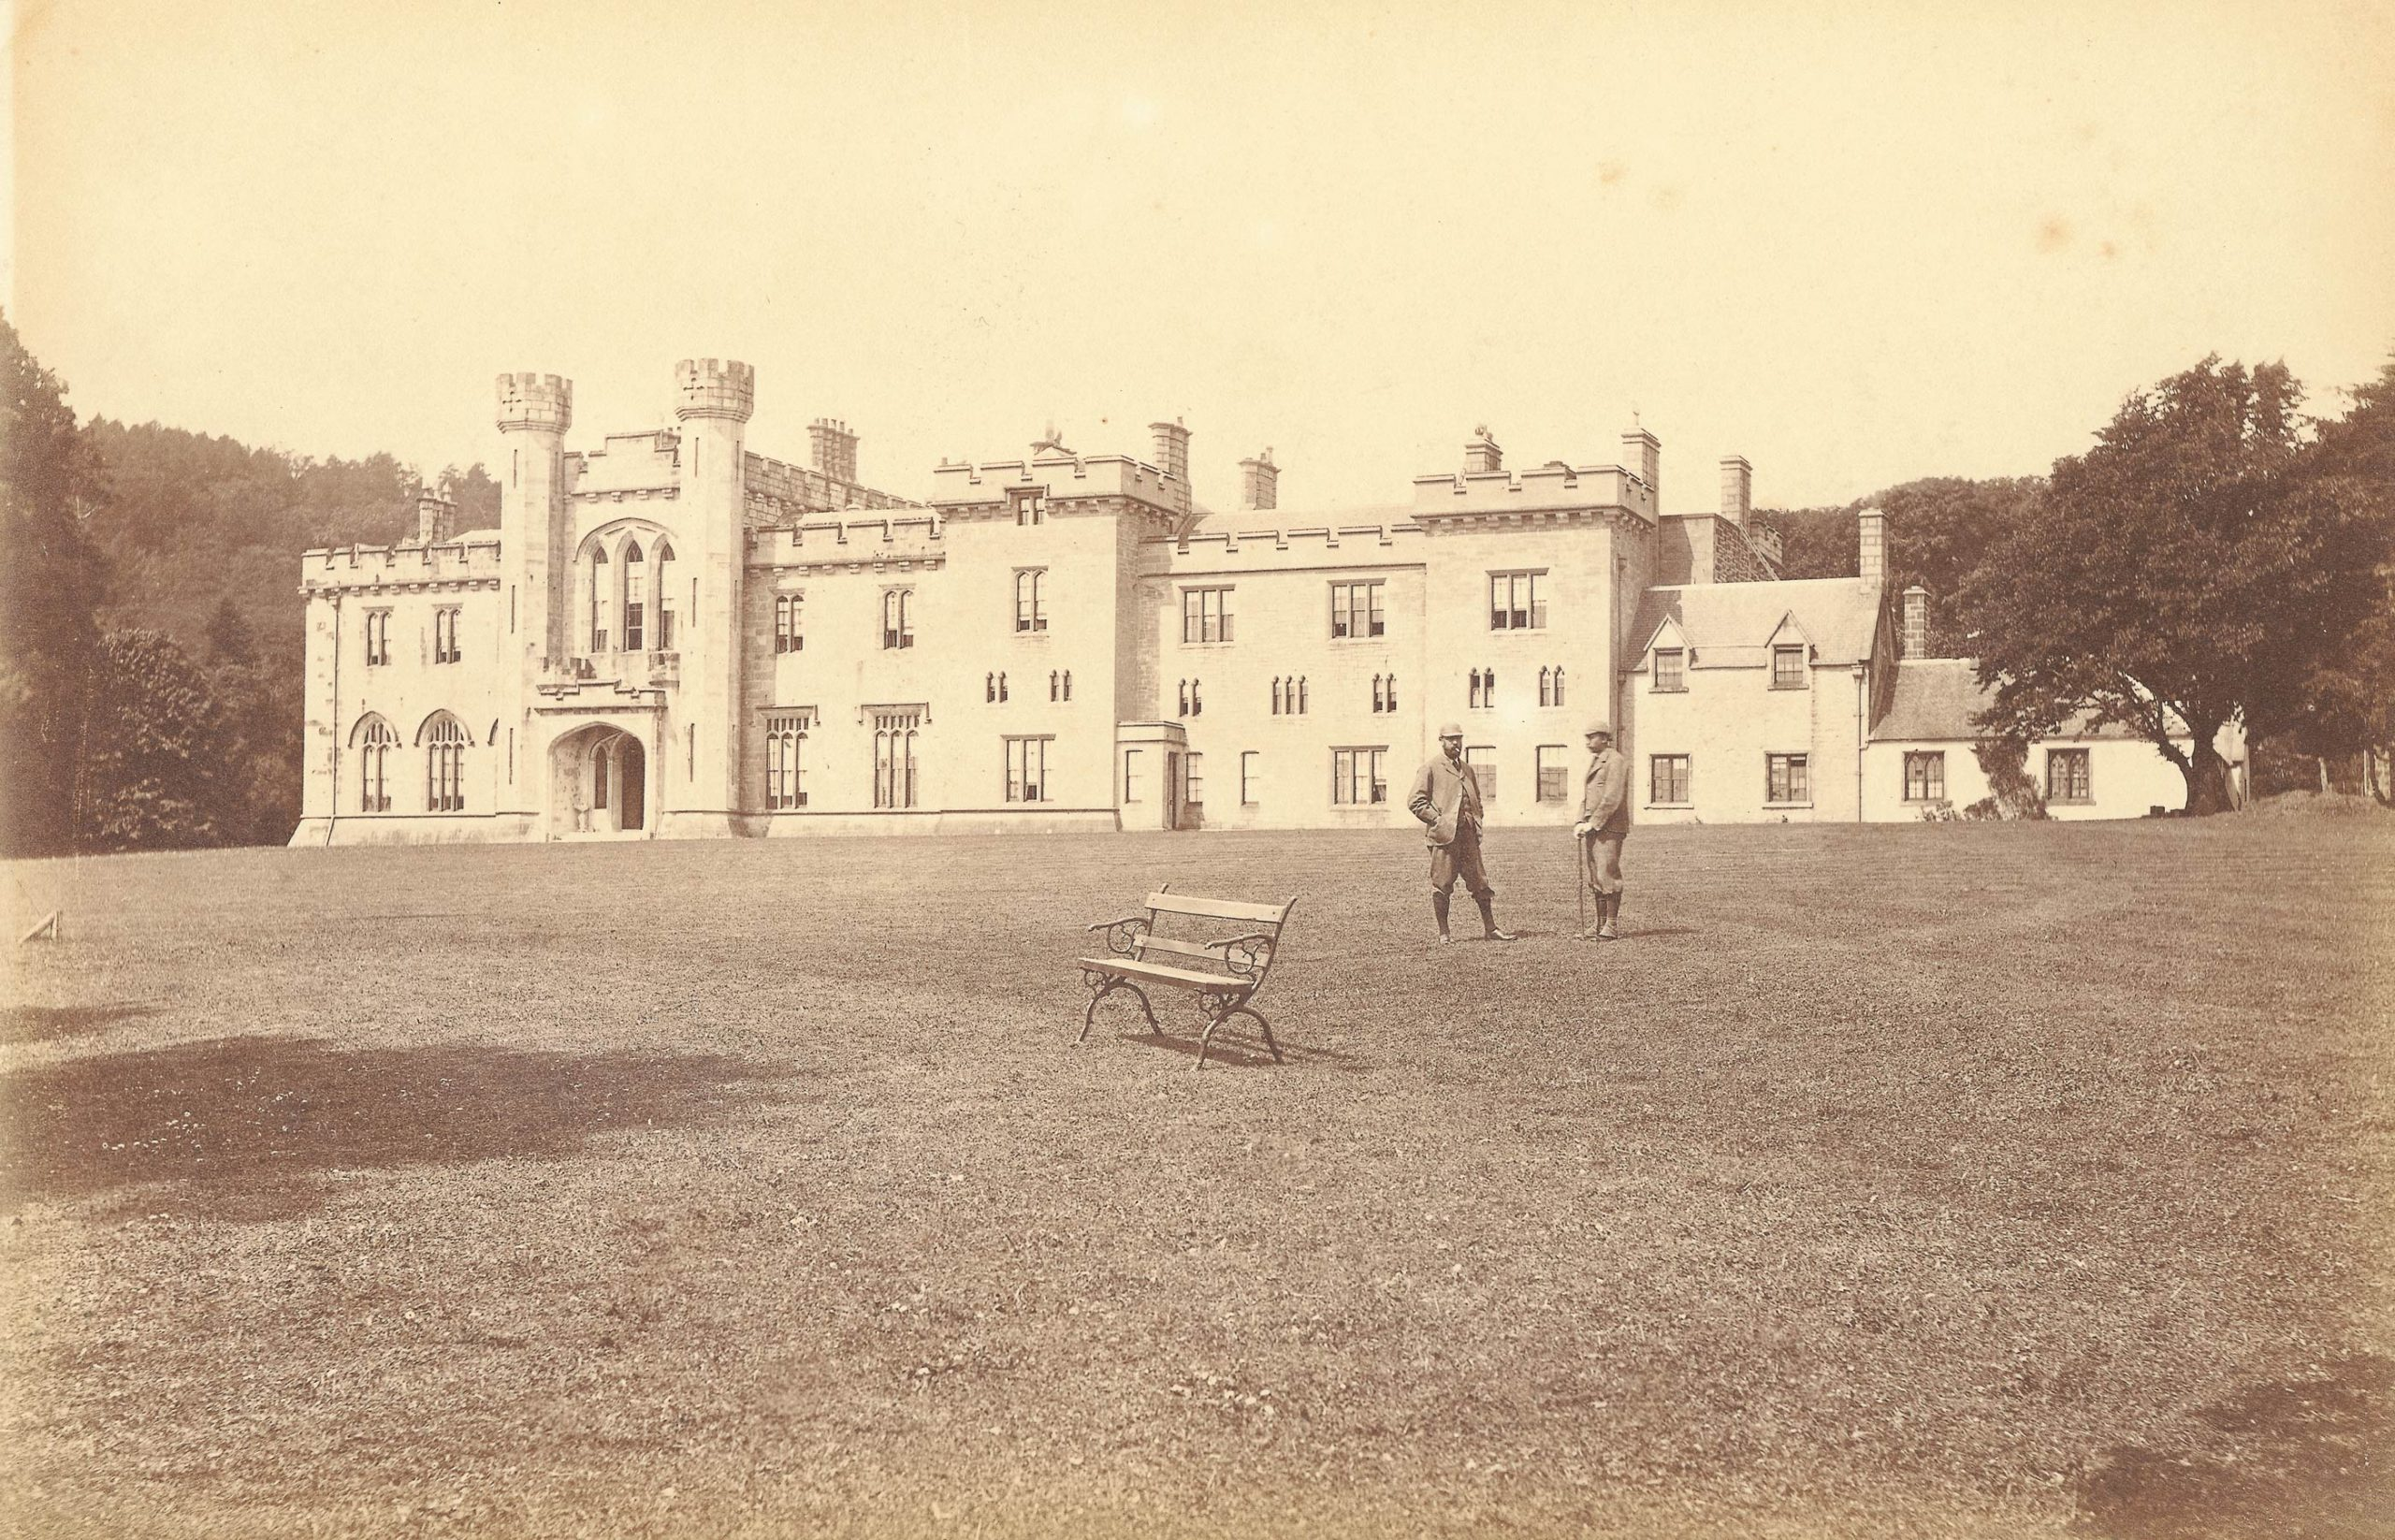 View of castle from front lawn, photograph taken in 1900